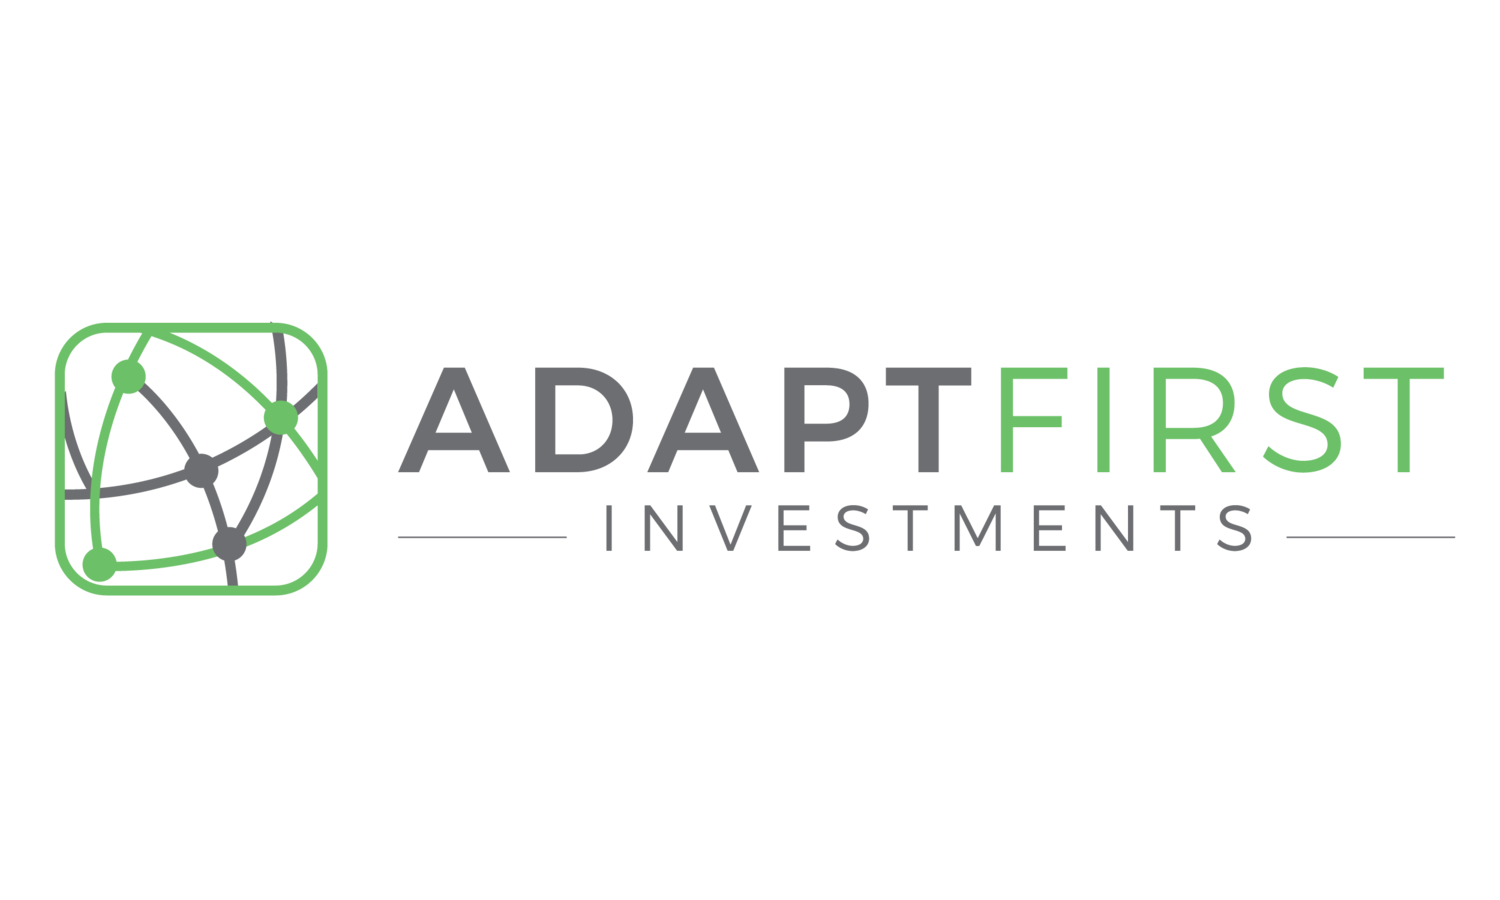 AdaptFirst Investments - Stocks Investing Stock Market Financial Advisor Planning